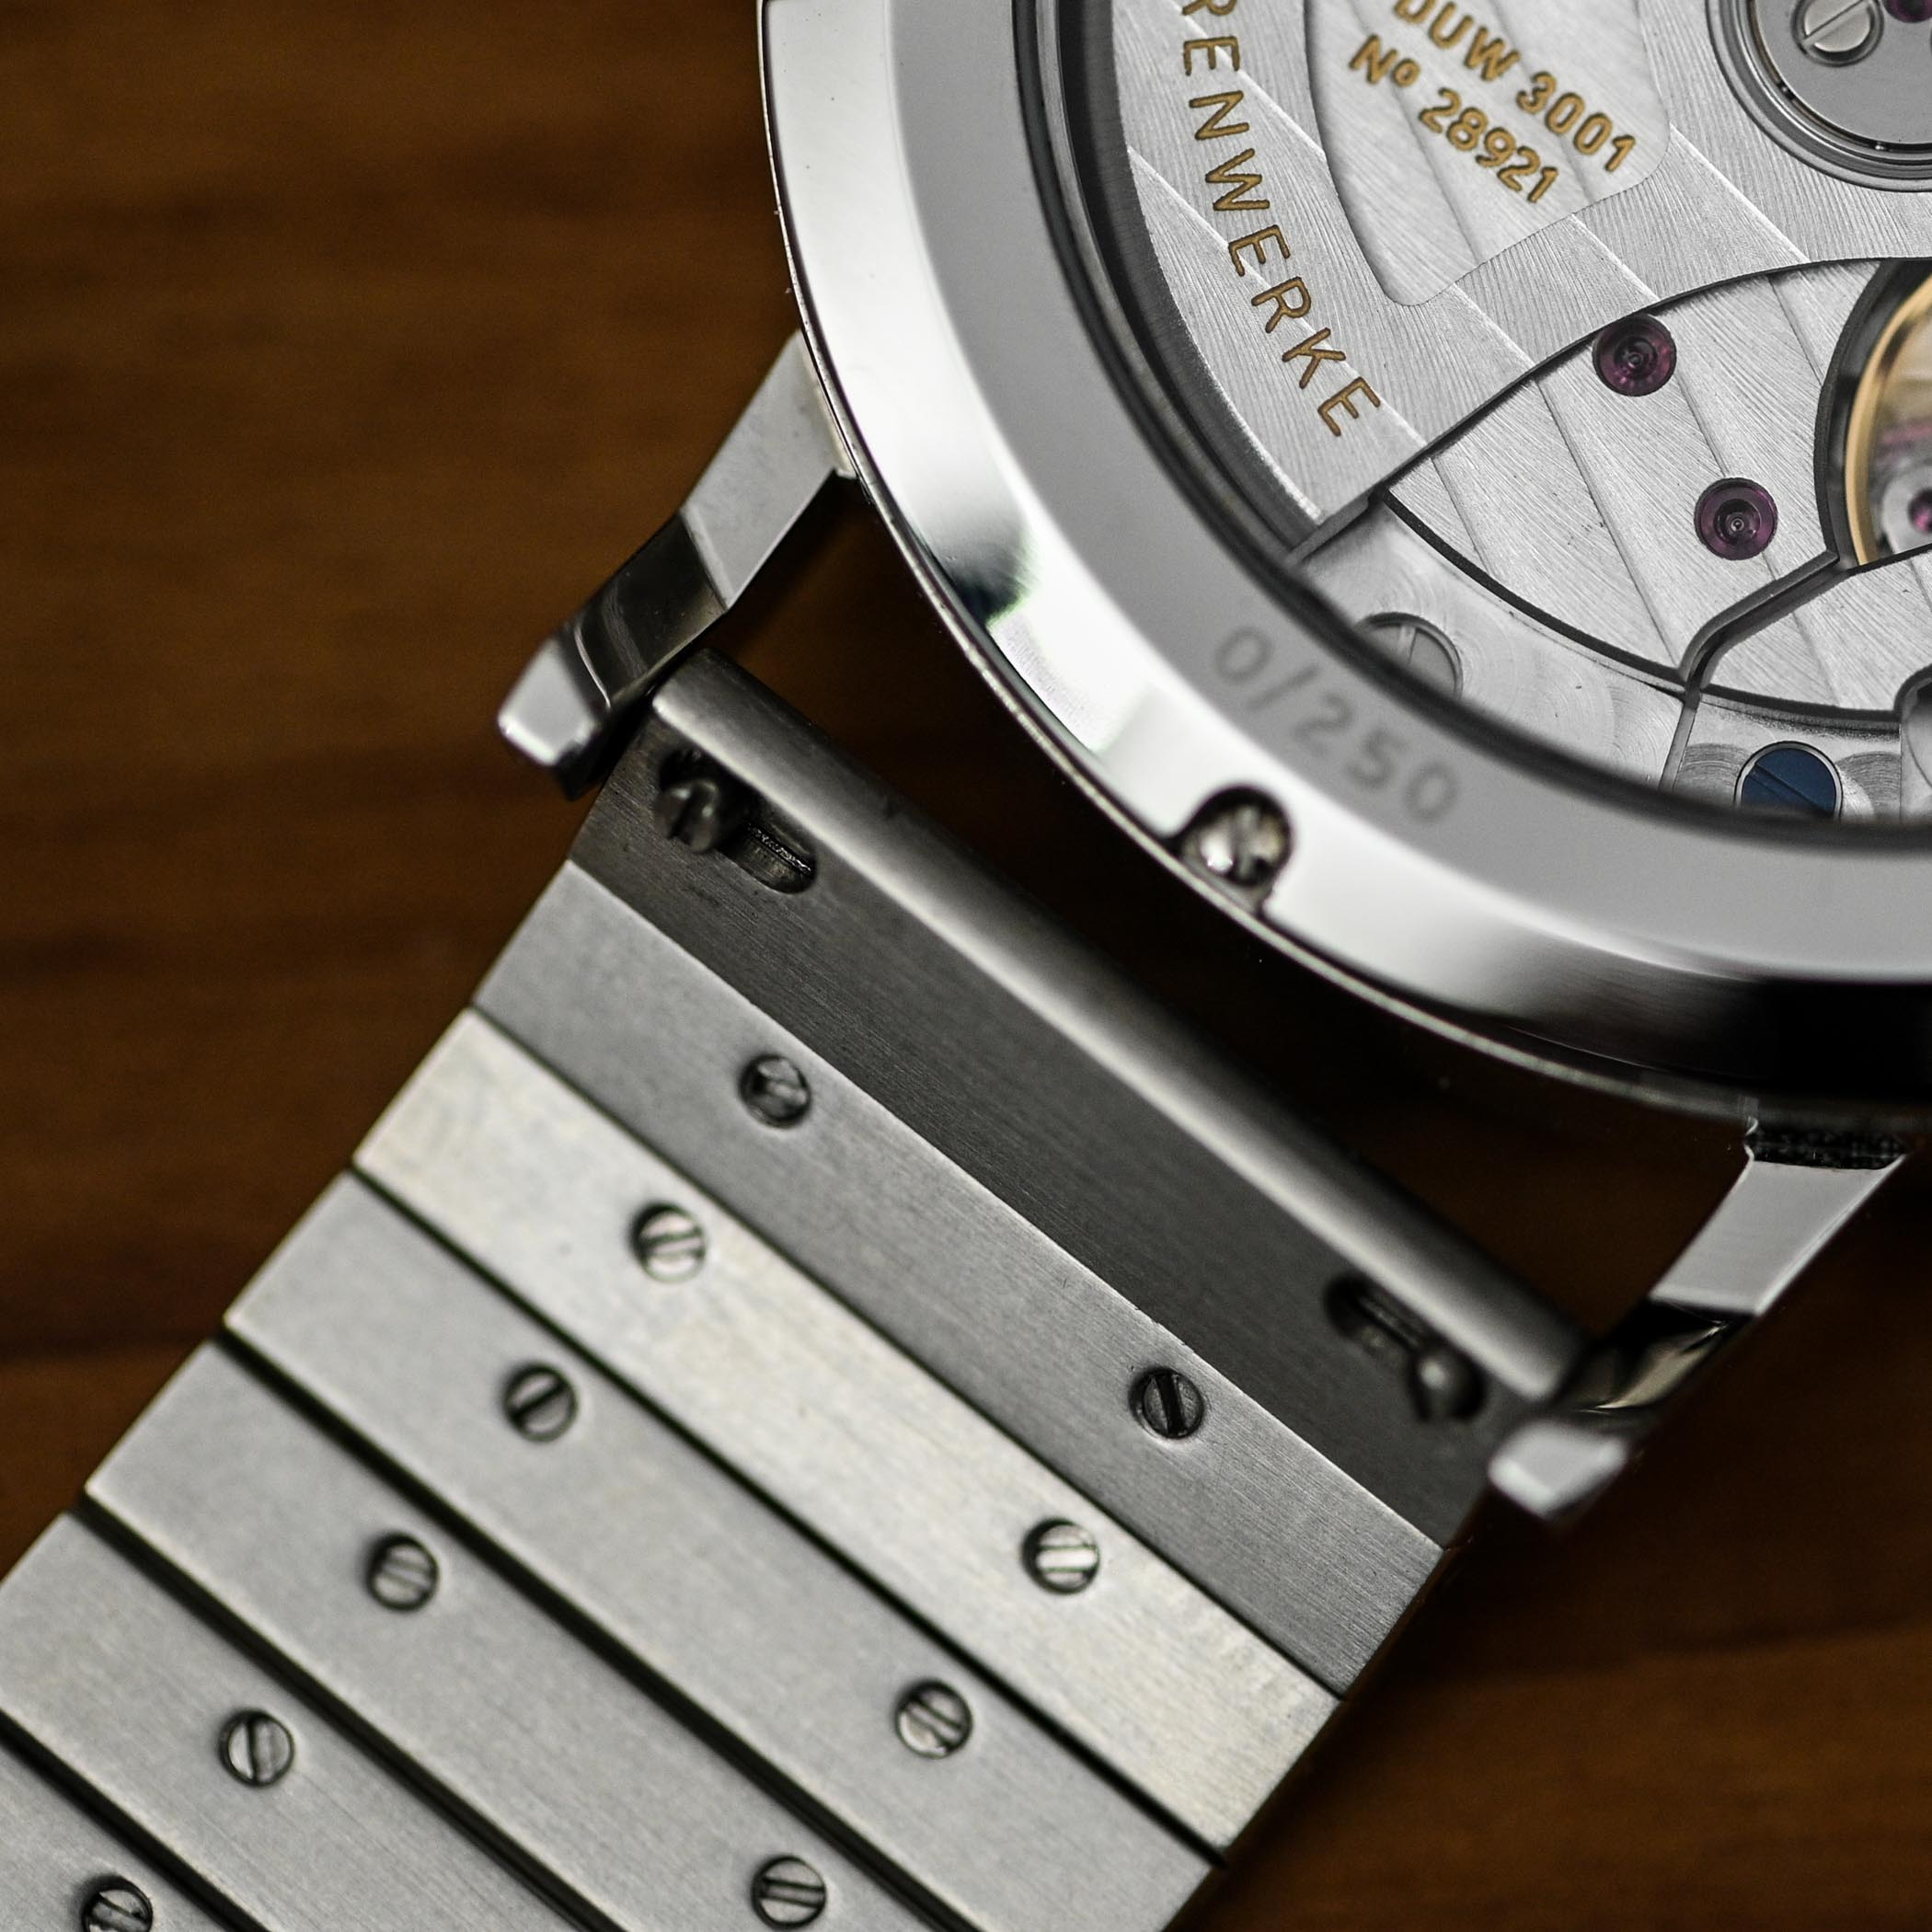 NOMOS Ahoi Neomatik Doctors Without Borders Limited Edition - review - 7